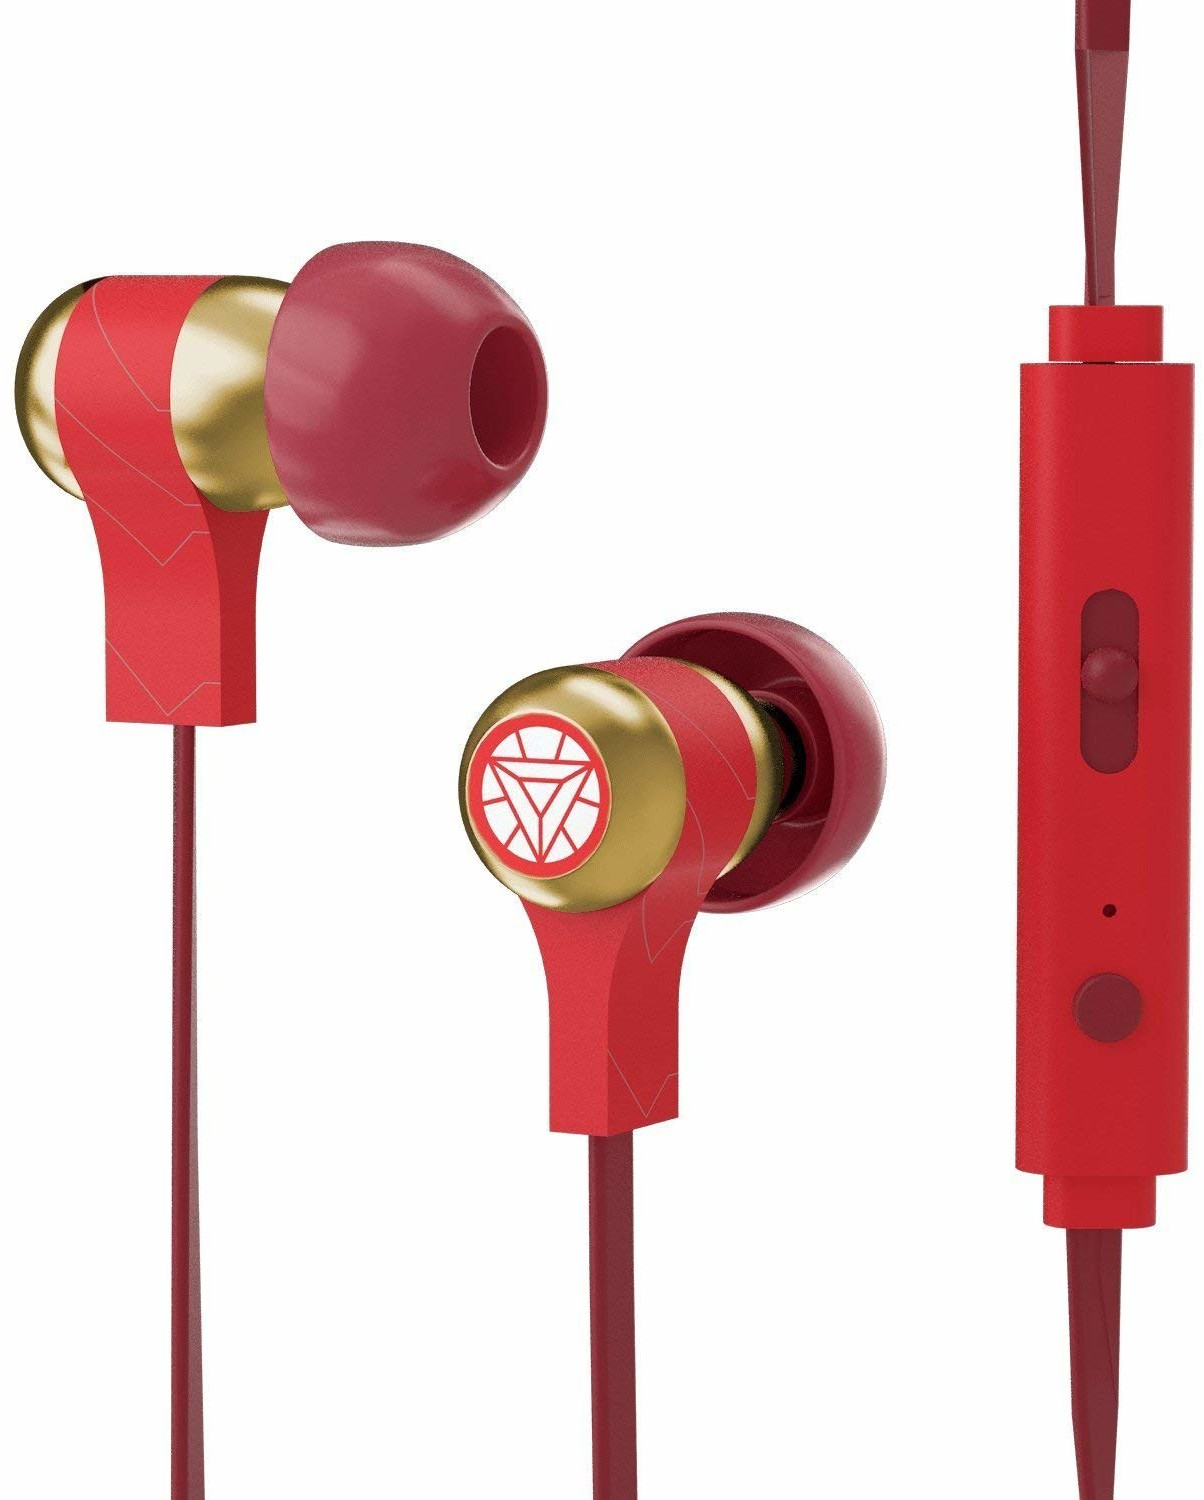 Image of Maikii Tribe Swing Earphones Avengers